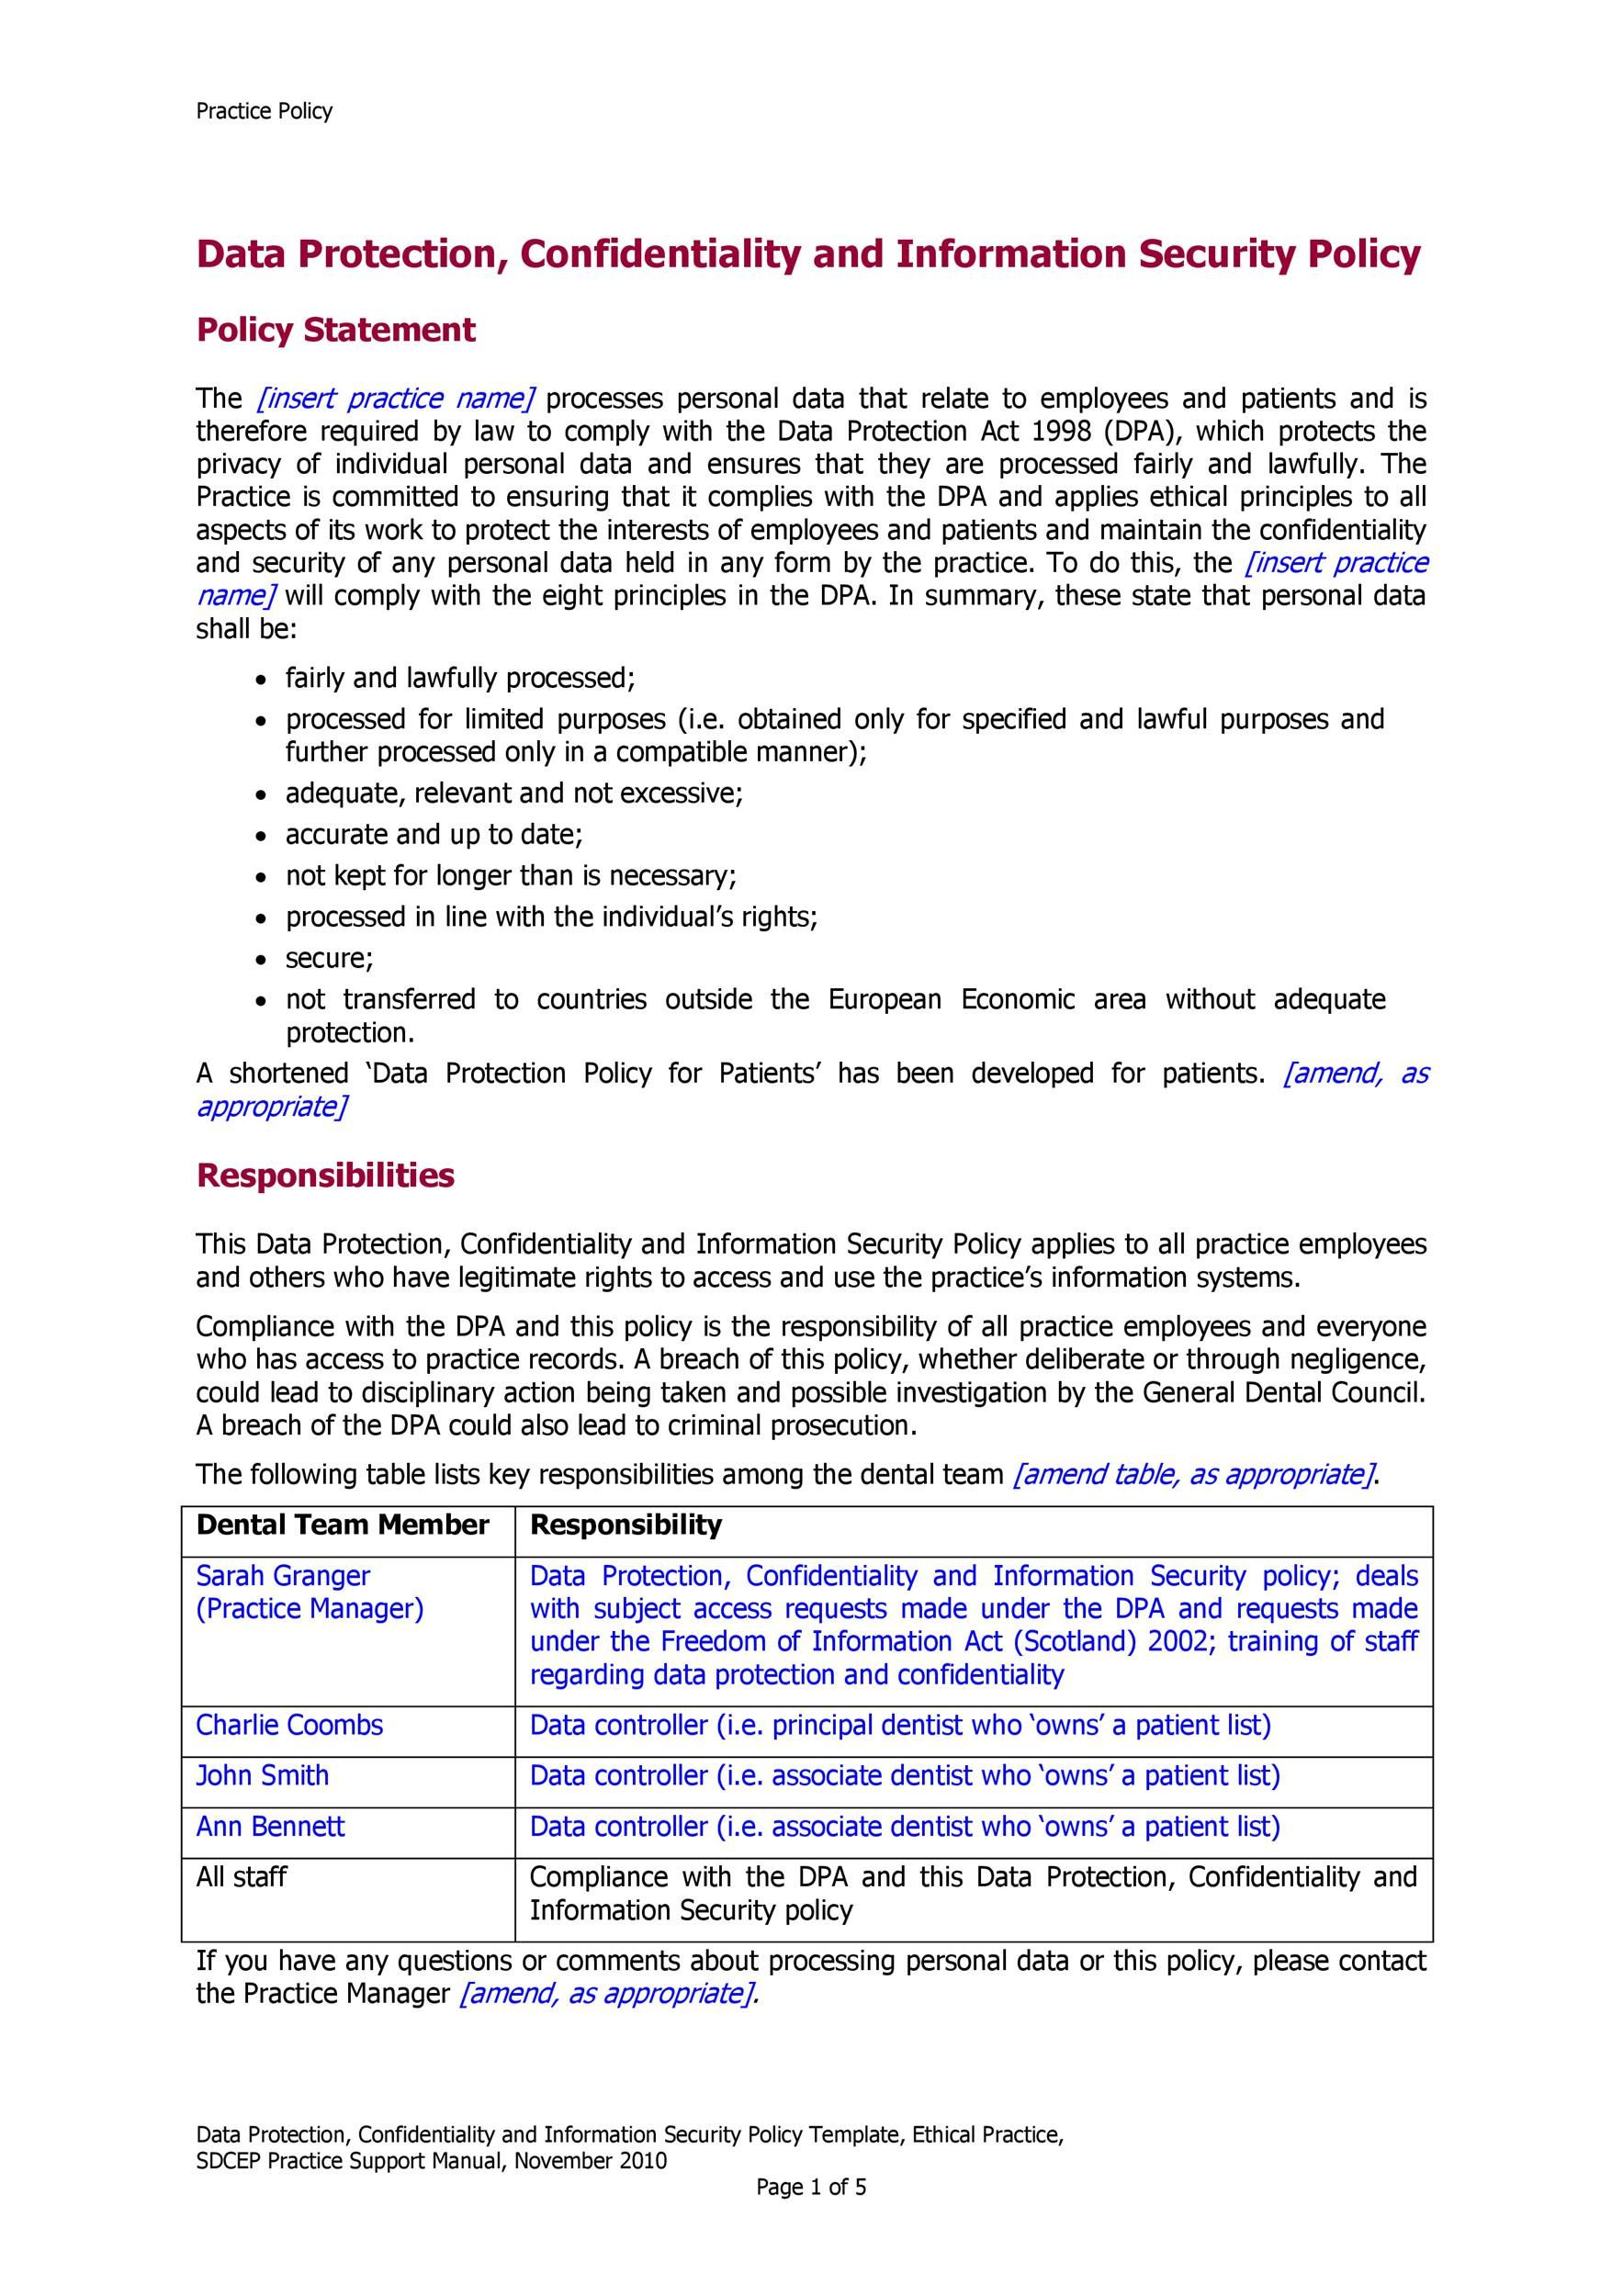 003 Astounding Data Security Policy Template High Resolution  Example Uk Center GdprFull